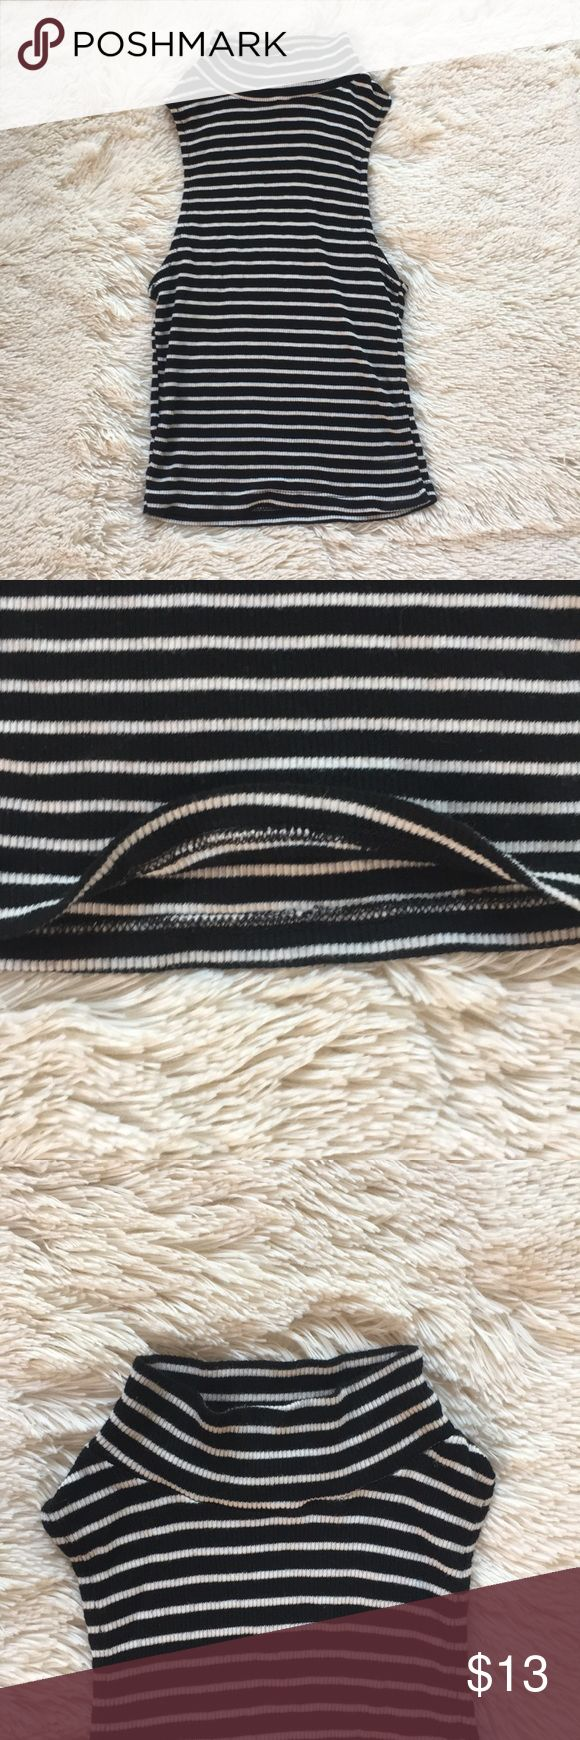 Sleeveless low cut tank top with stripes Super soft black and white striped tank top with a high neck  Condition: worn once all seams in tack   Size: one size fits all (maybe youth large but really stretchy   Looks: no rips, tears, or stains Brandy Melville Shirts & Tops Tank Tops